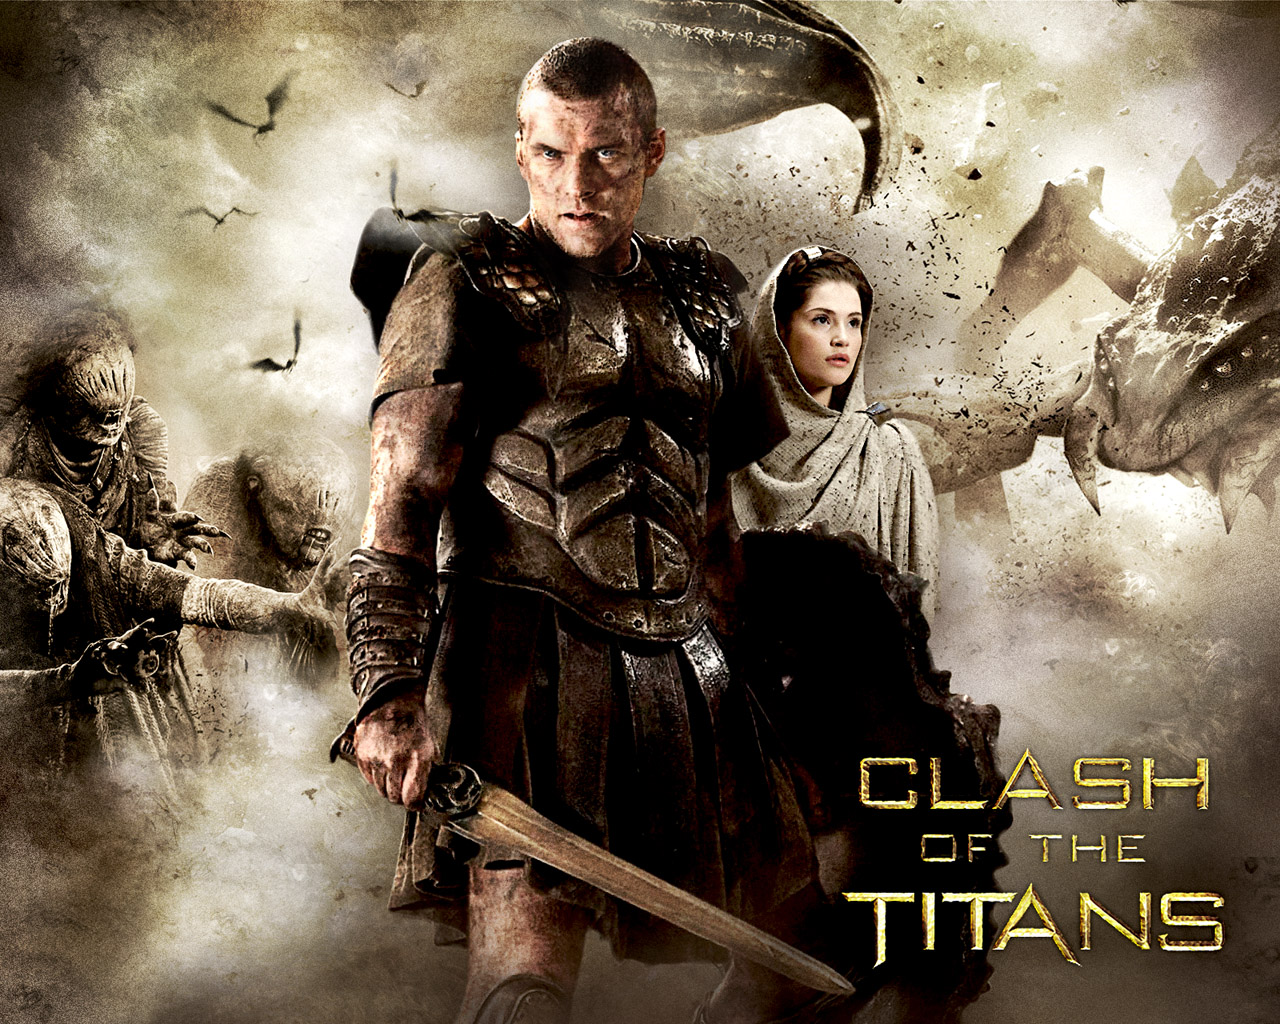 1280x1024 - Clash Of The Titans (2010) Wallpapers 10